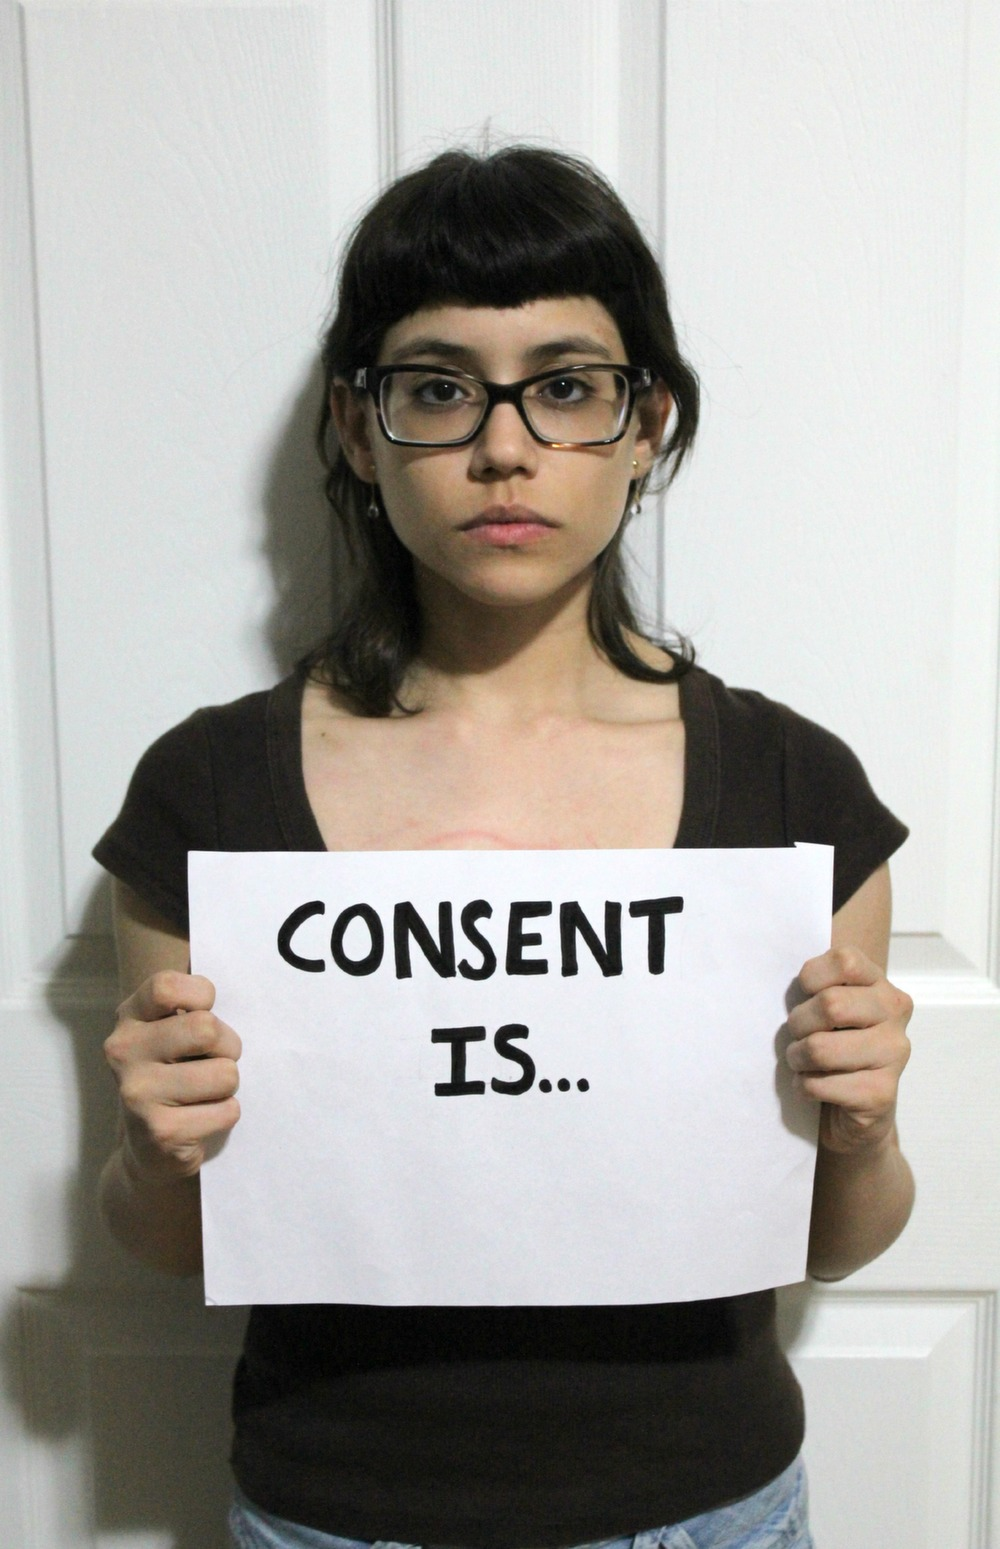 We need to reframe consent campaigns to understand that only yes means yes. (Photo by Jasspreet Sahib)